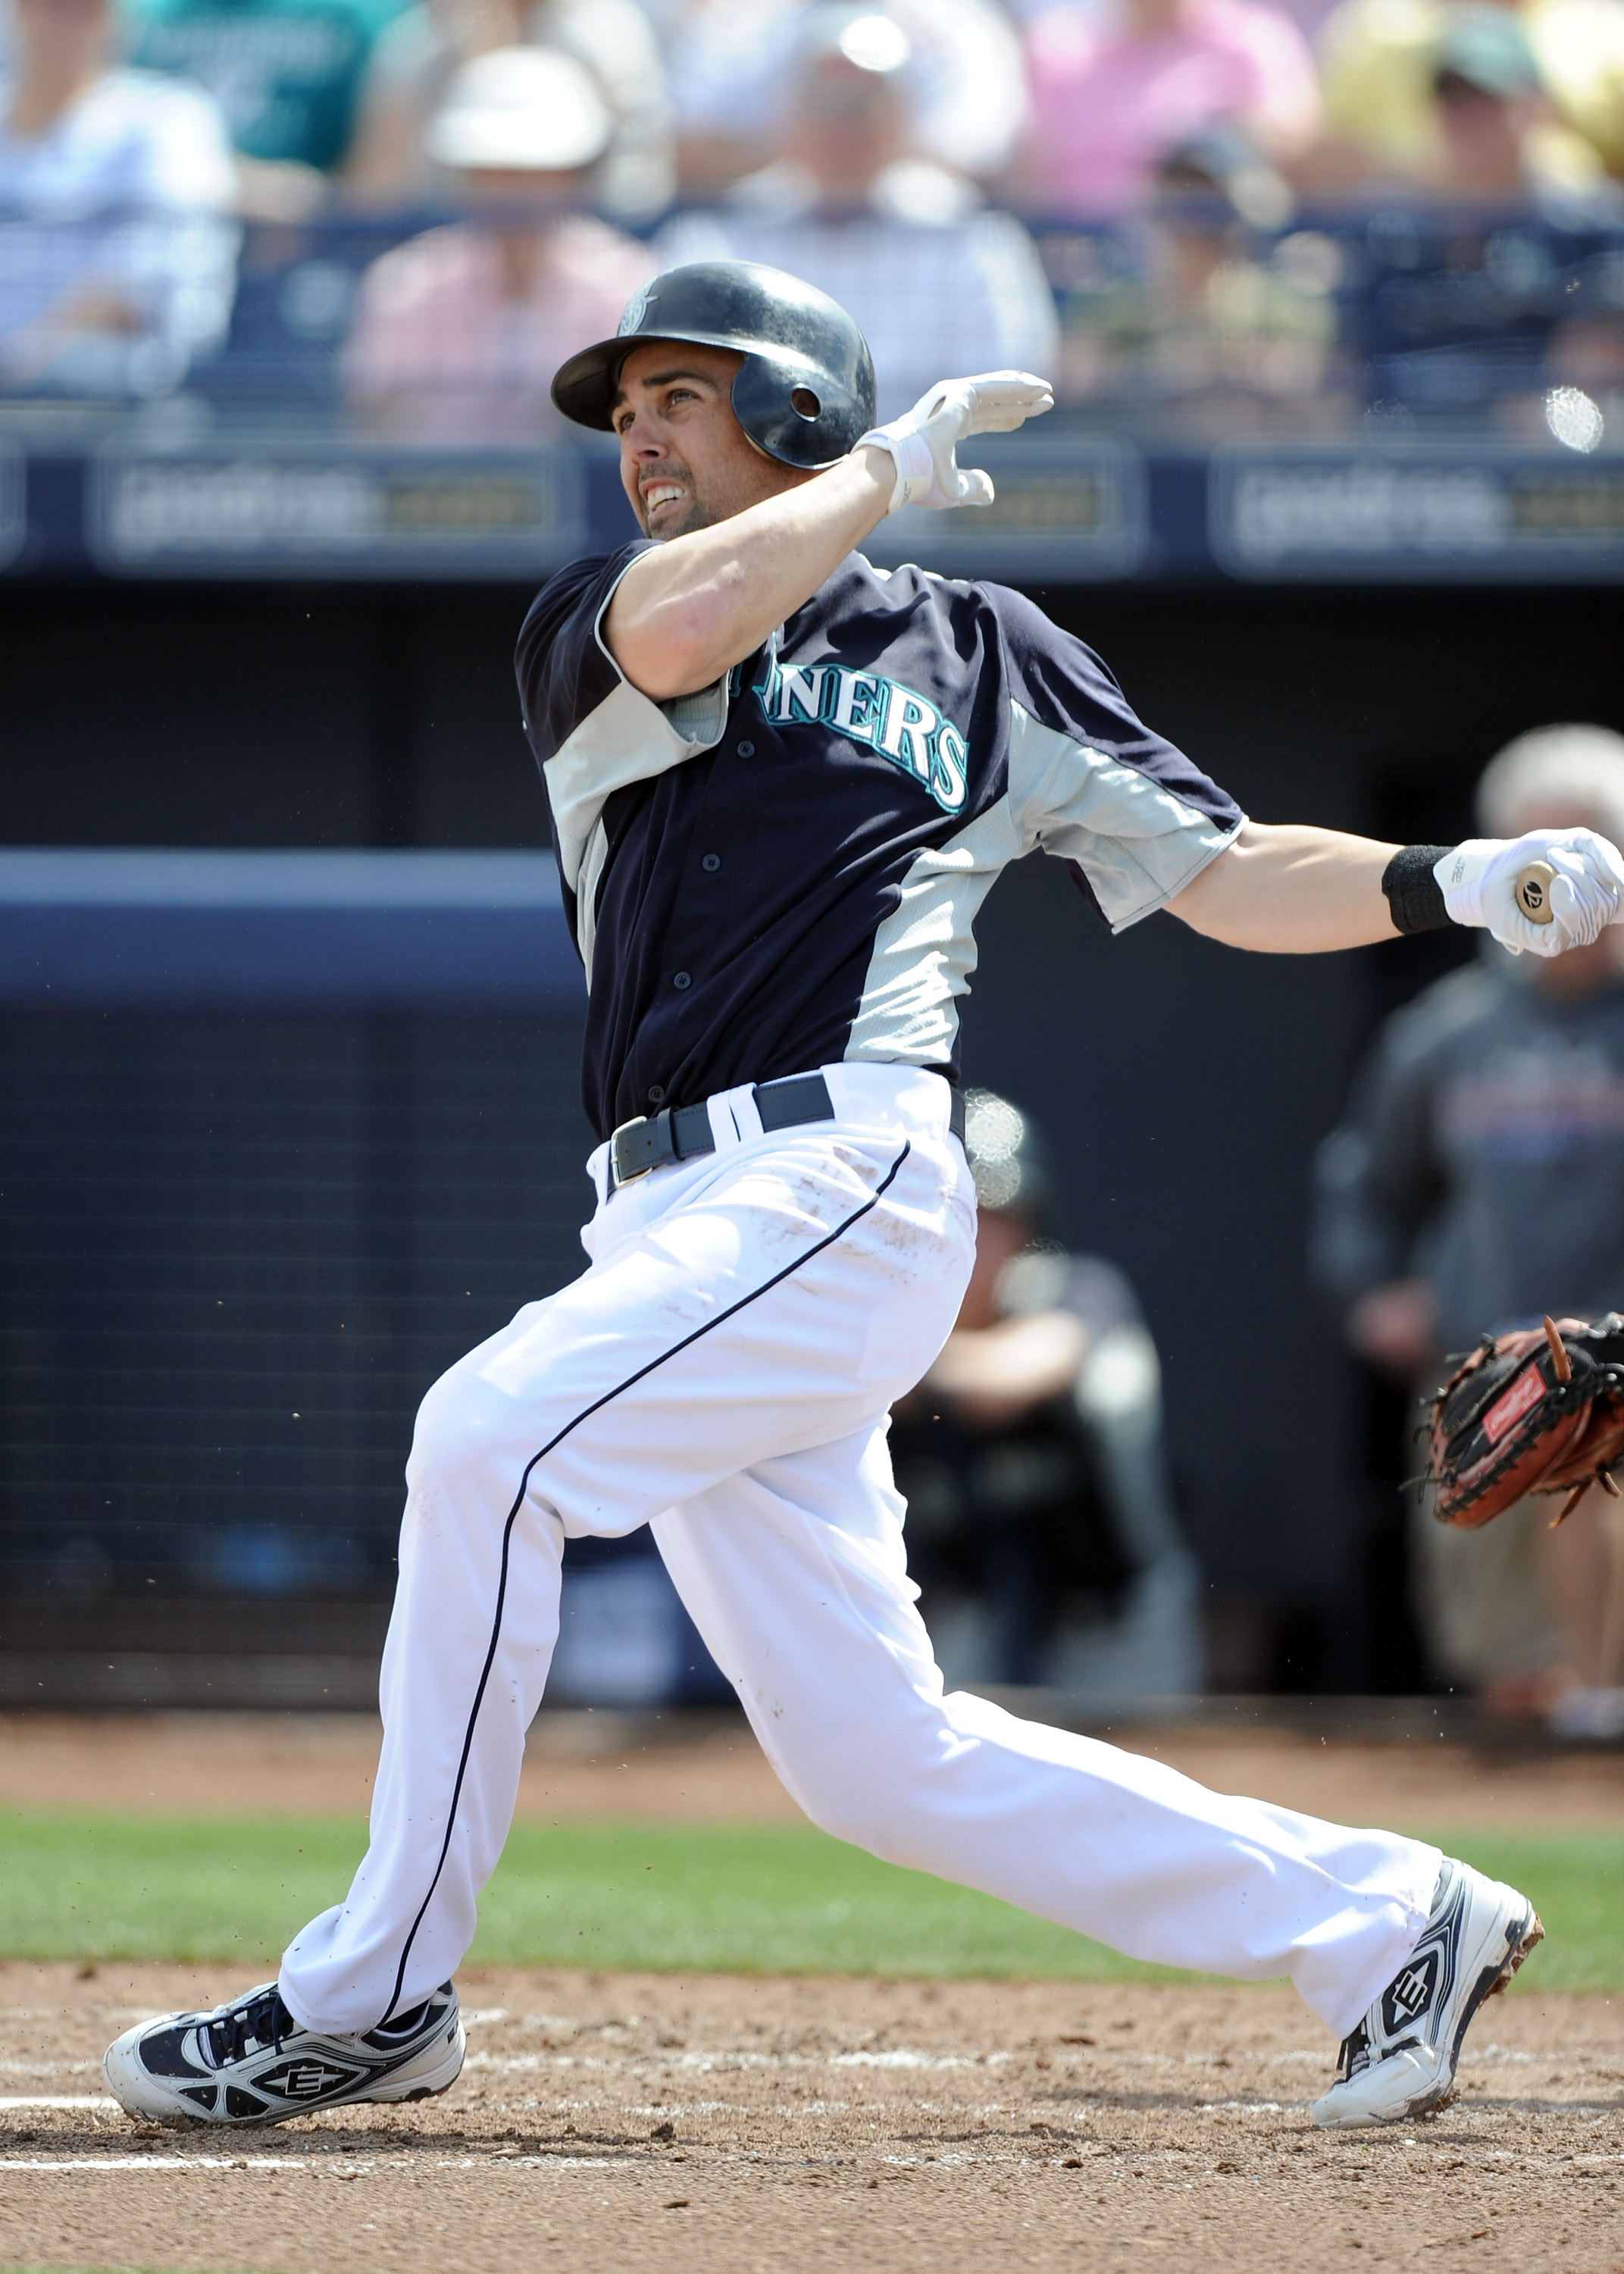 PEORIA, AZ - MARCH 01:  Jack Wilson #2 of the Seattle Mariners at bat against the Texas Rangers during spring training at Peoria Stadium on March 1, 2011 in Peoria, Arizona.  (Photo by Harry How/Getty Images)